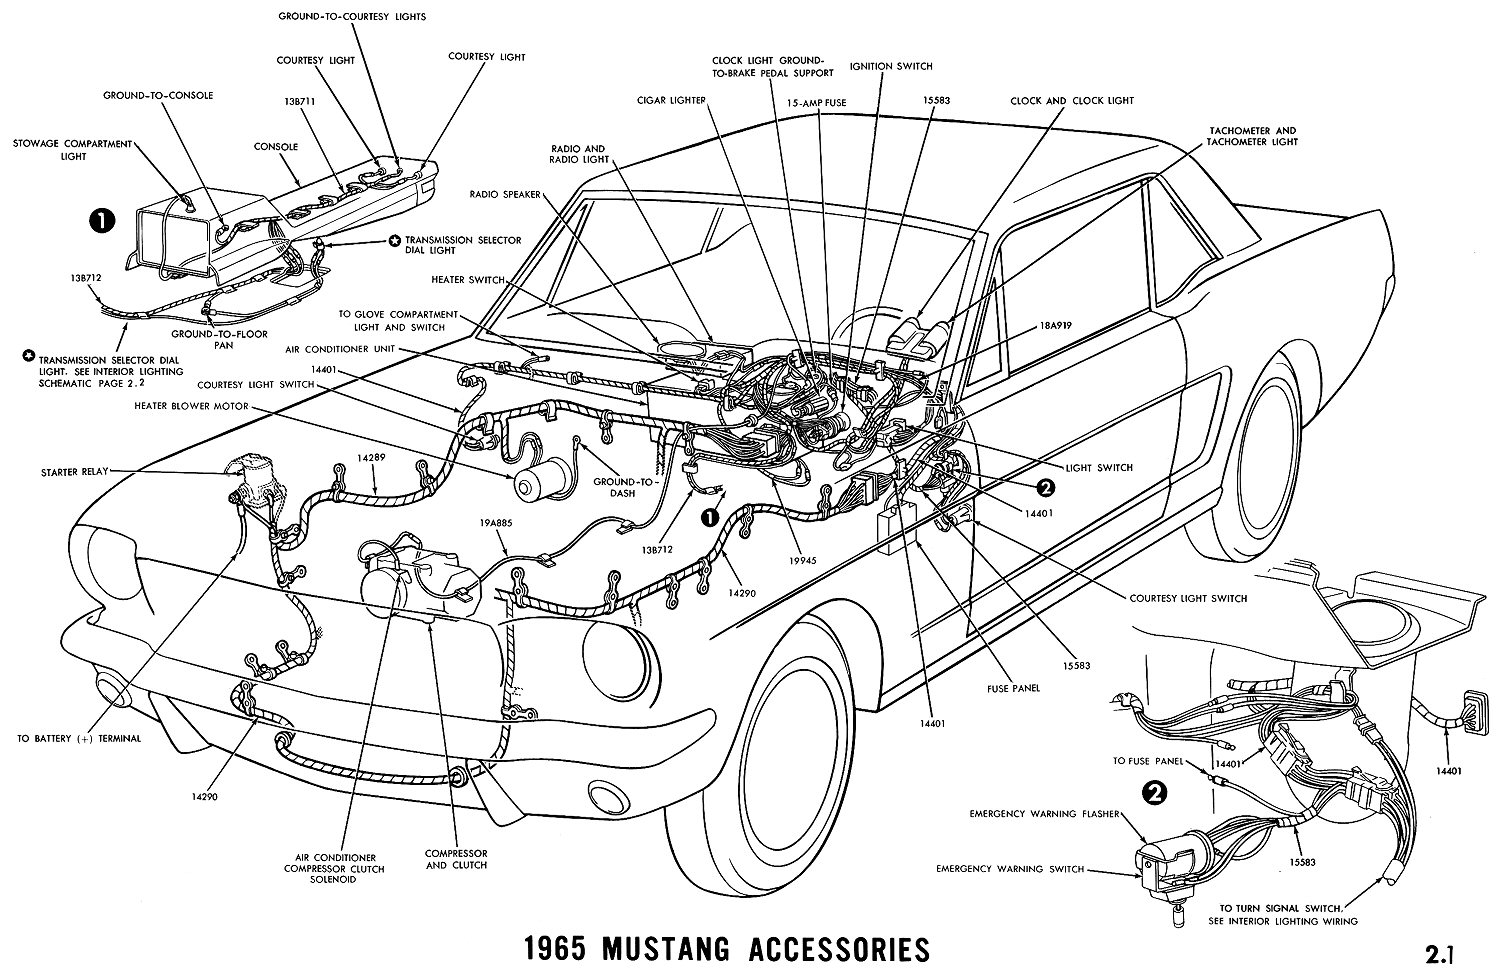 65 mustang accesories 1965 mustang accesories diagram 1965 mustang wiring diagram at bayanpartner.co